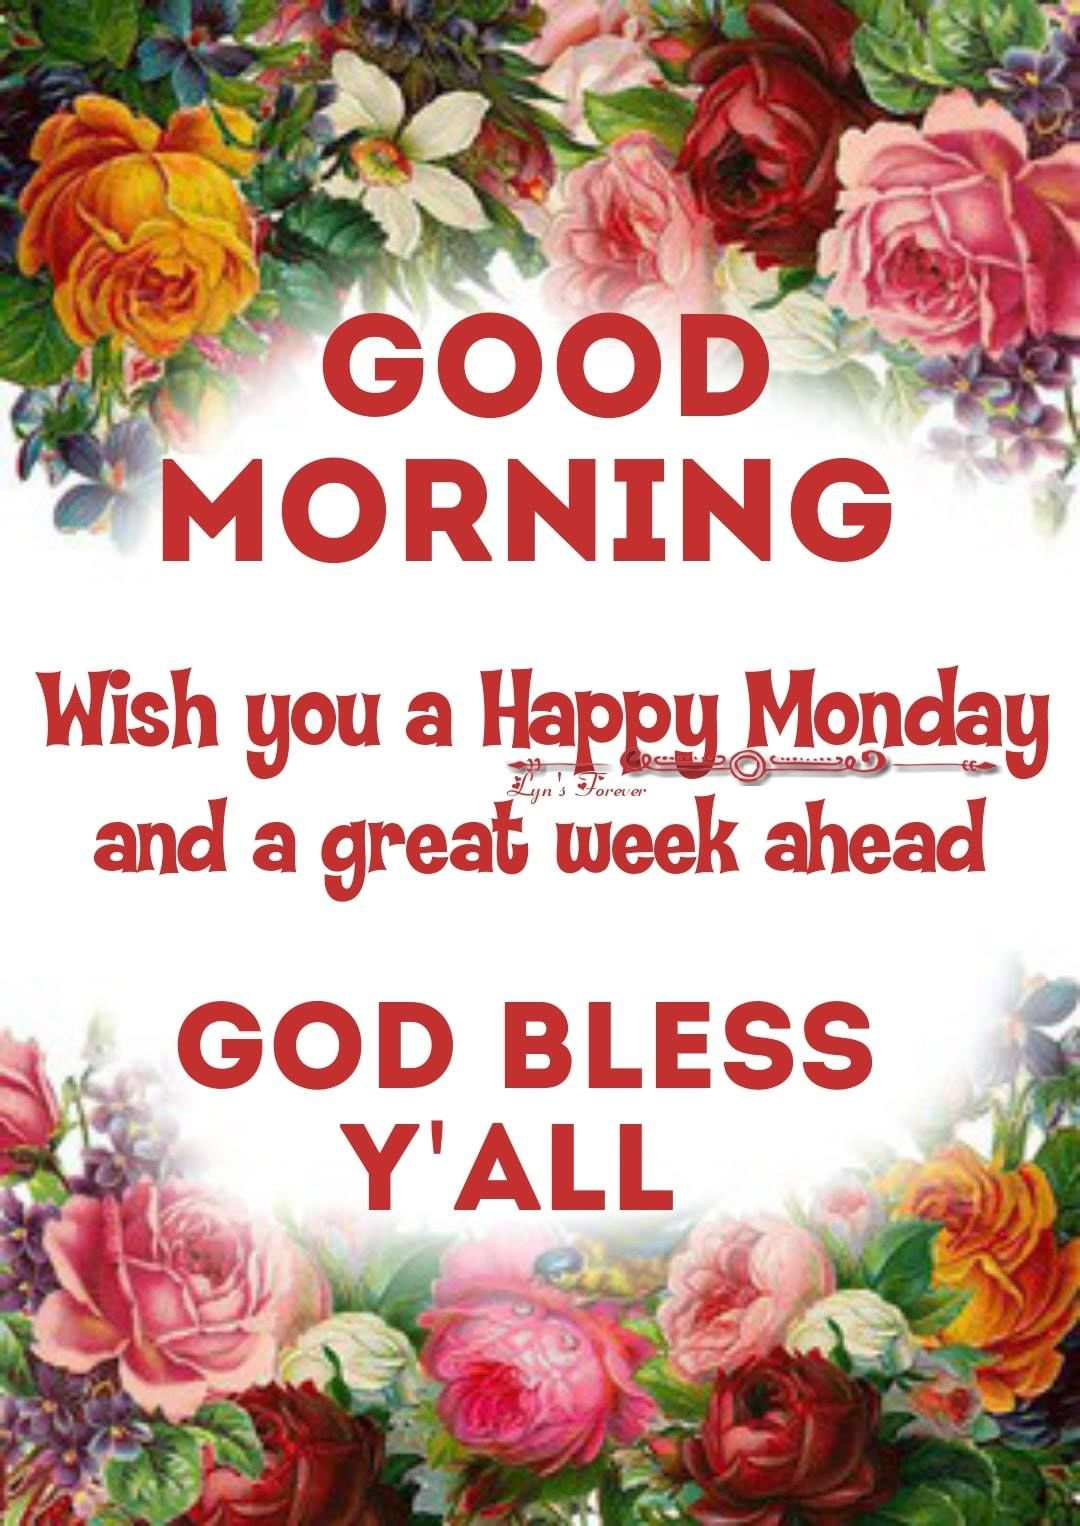 God Bless Y All Good Morning Pictures Photos And Images For Facebook Tumblr Pinterest And Twitter